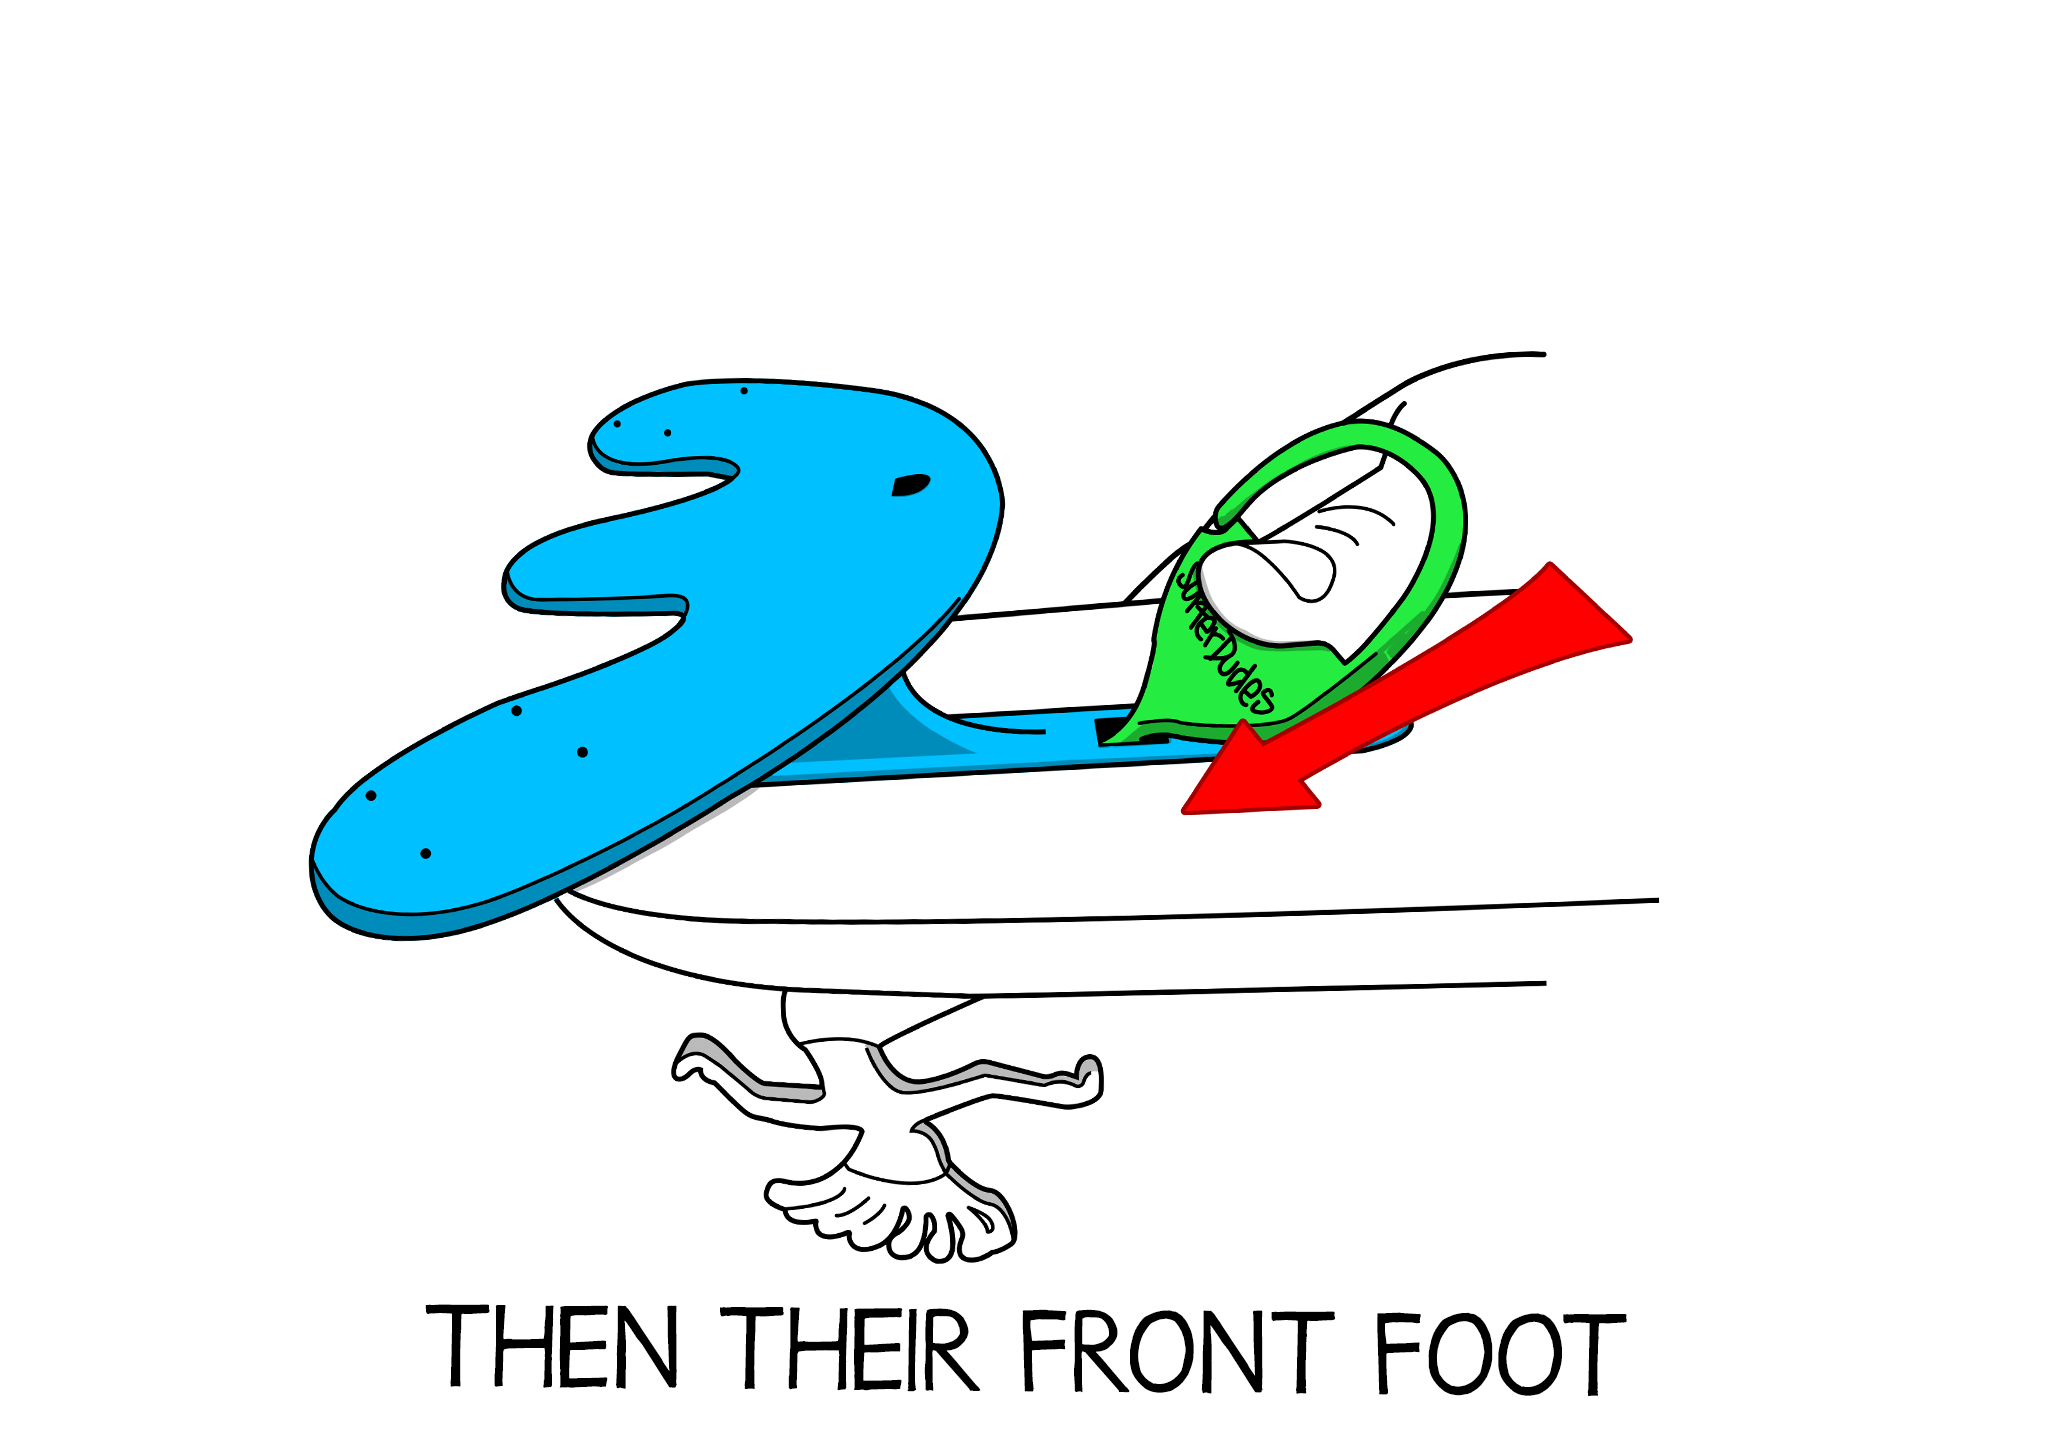 Then Their Front Foot